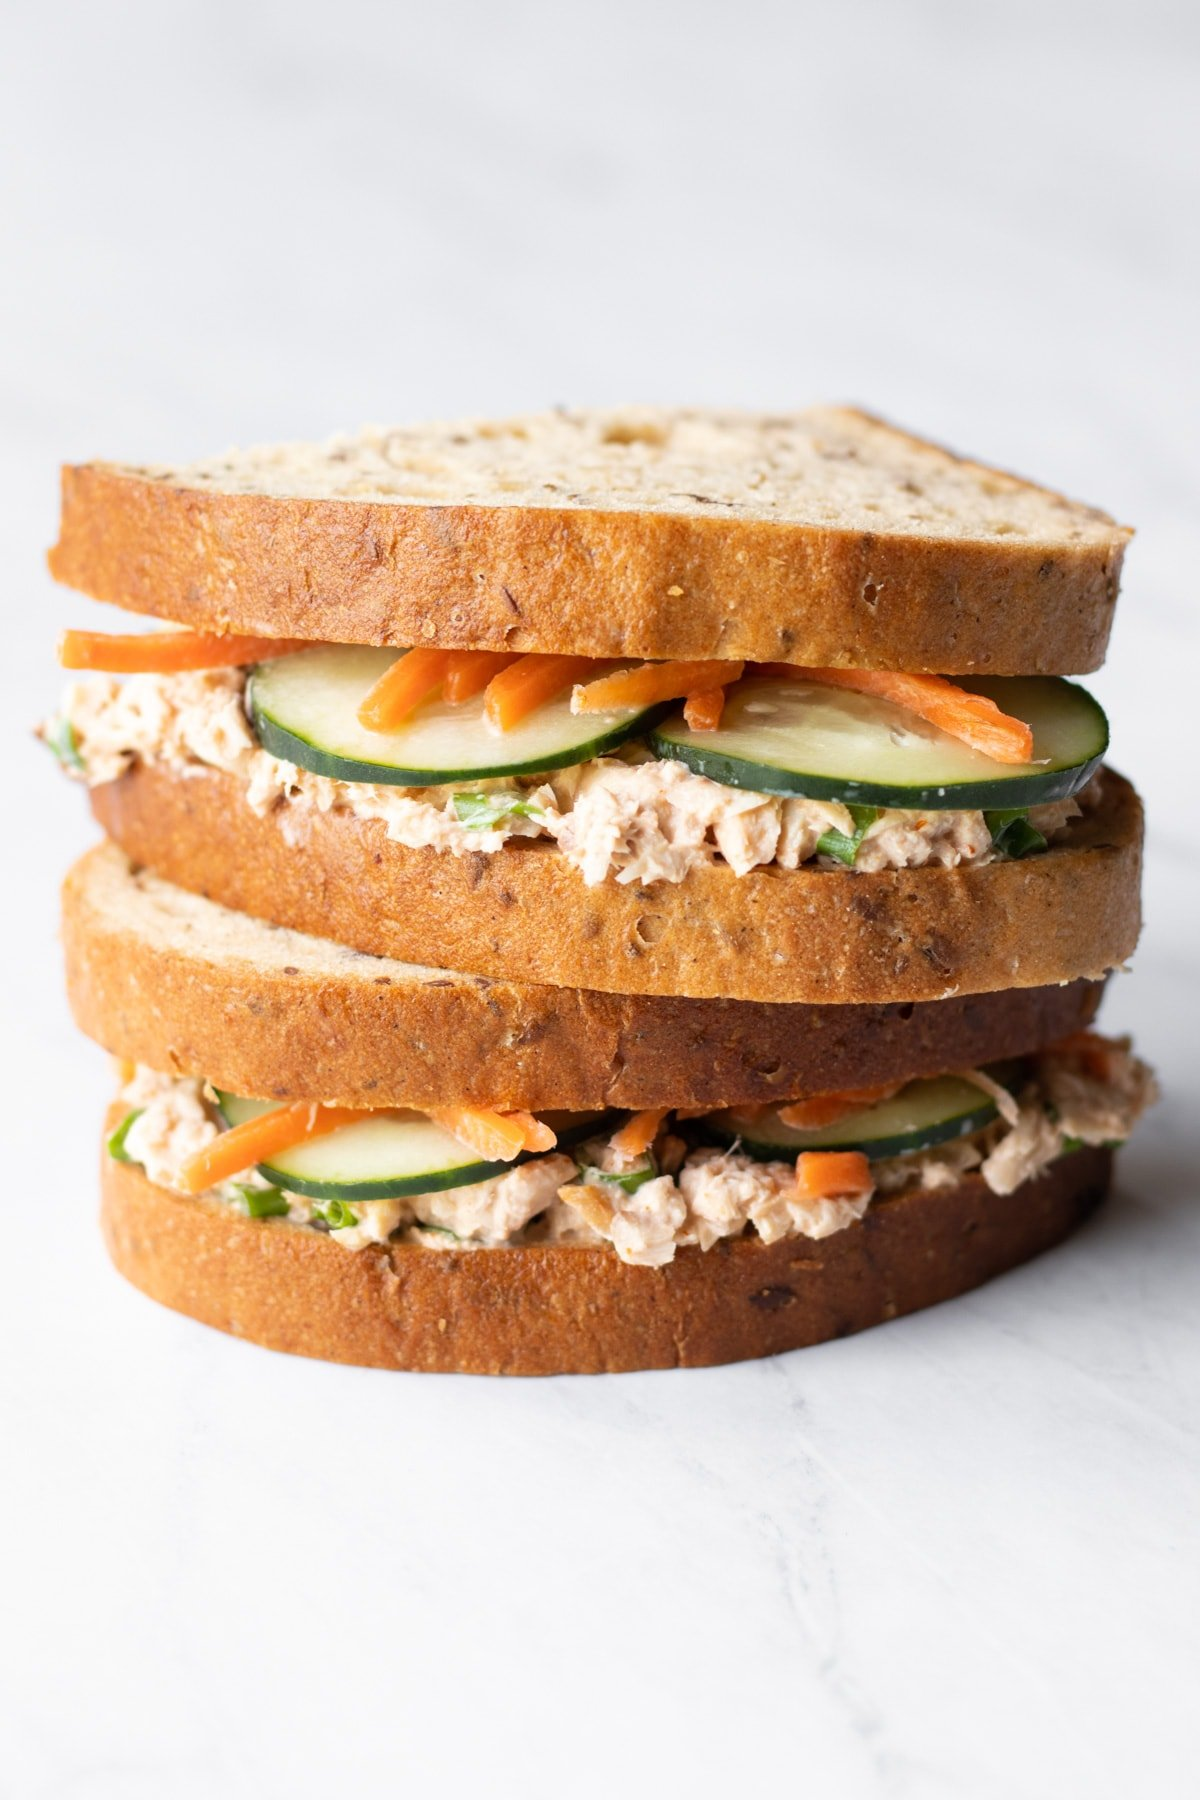 A low FODMAP spicy salmon salad sandwich is cut in two and the halves are stacked on top of each other. In between the low FODMAP bread slice spread with salmon salad, there are bits of cucumber slices and carrot matchsticks poking out.